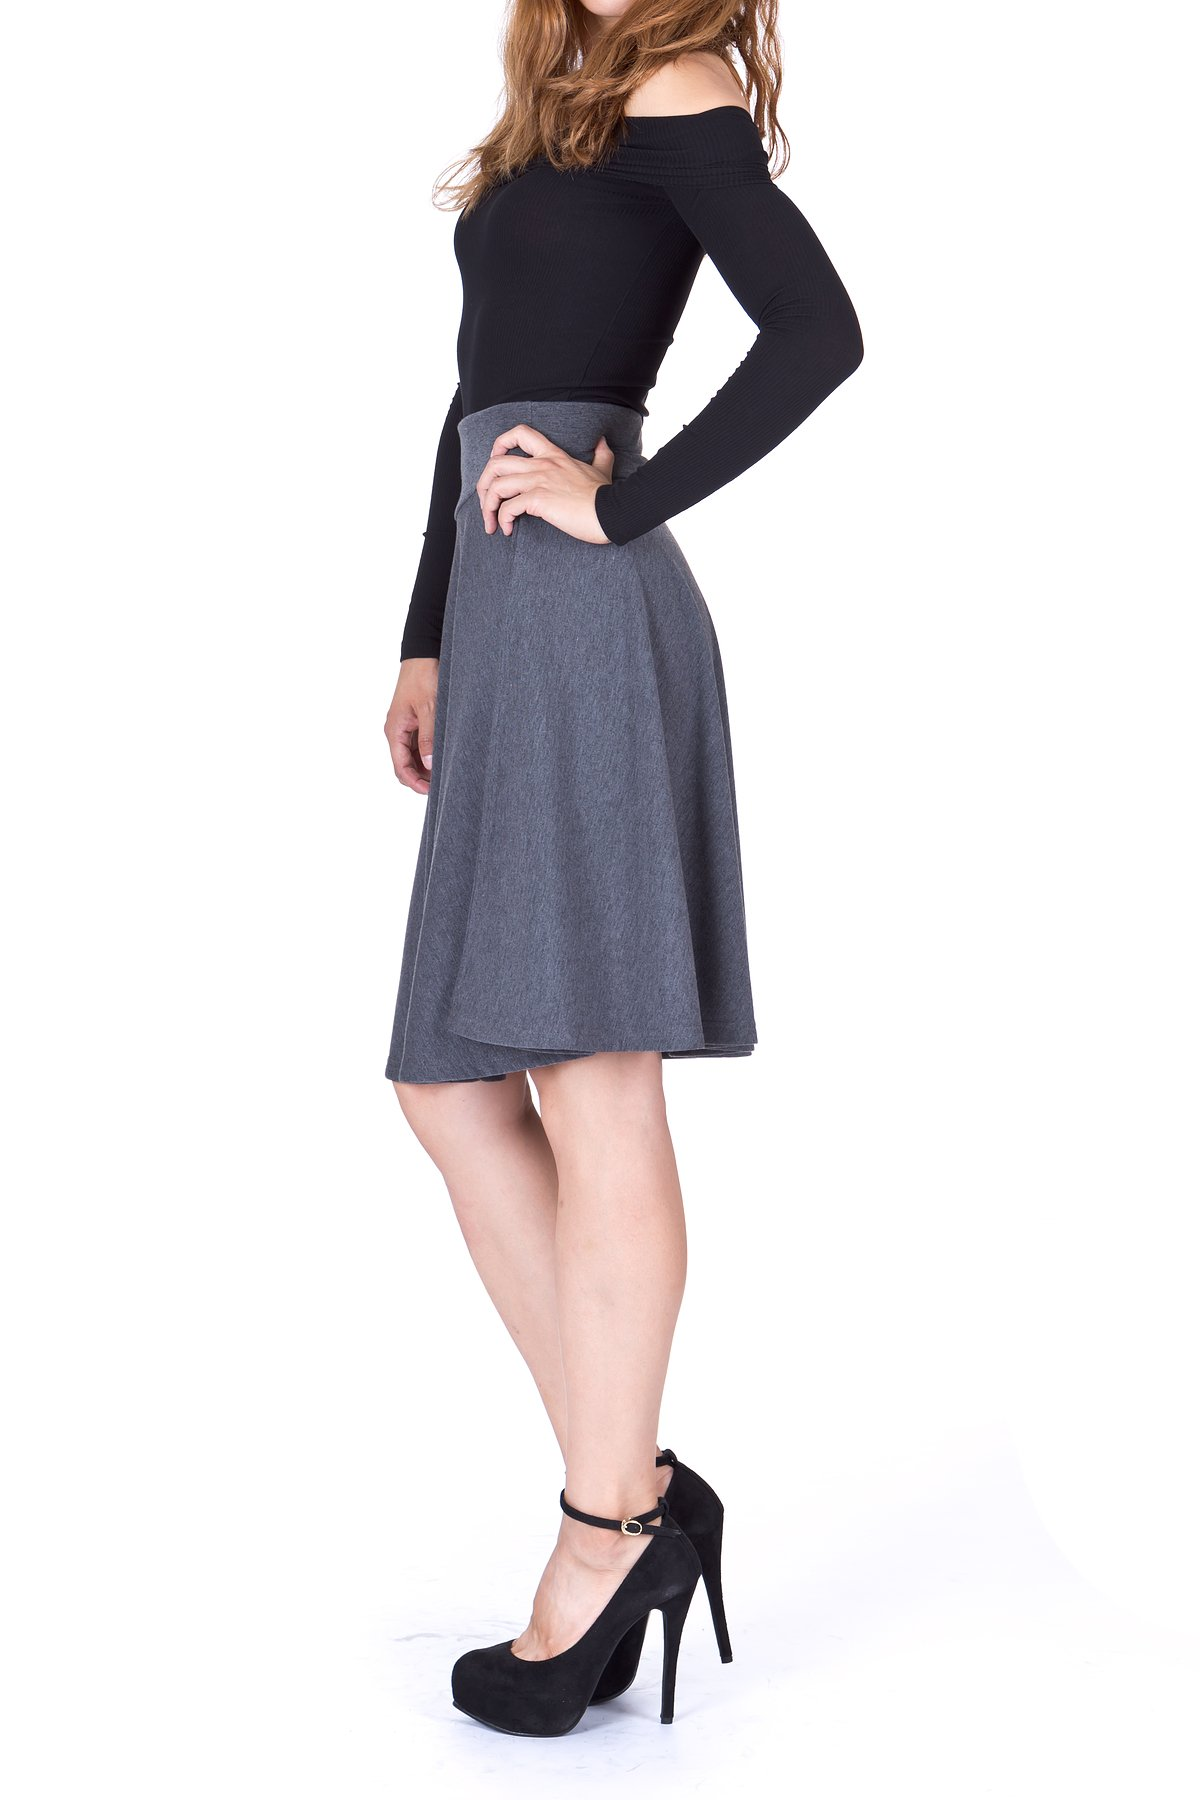 Impeccable Elastic High Waist A line Full Flared Swing Skater Knee Length Skirt Charcoal 3 1